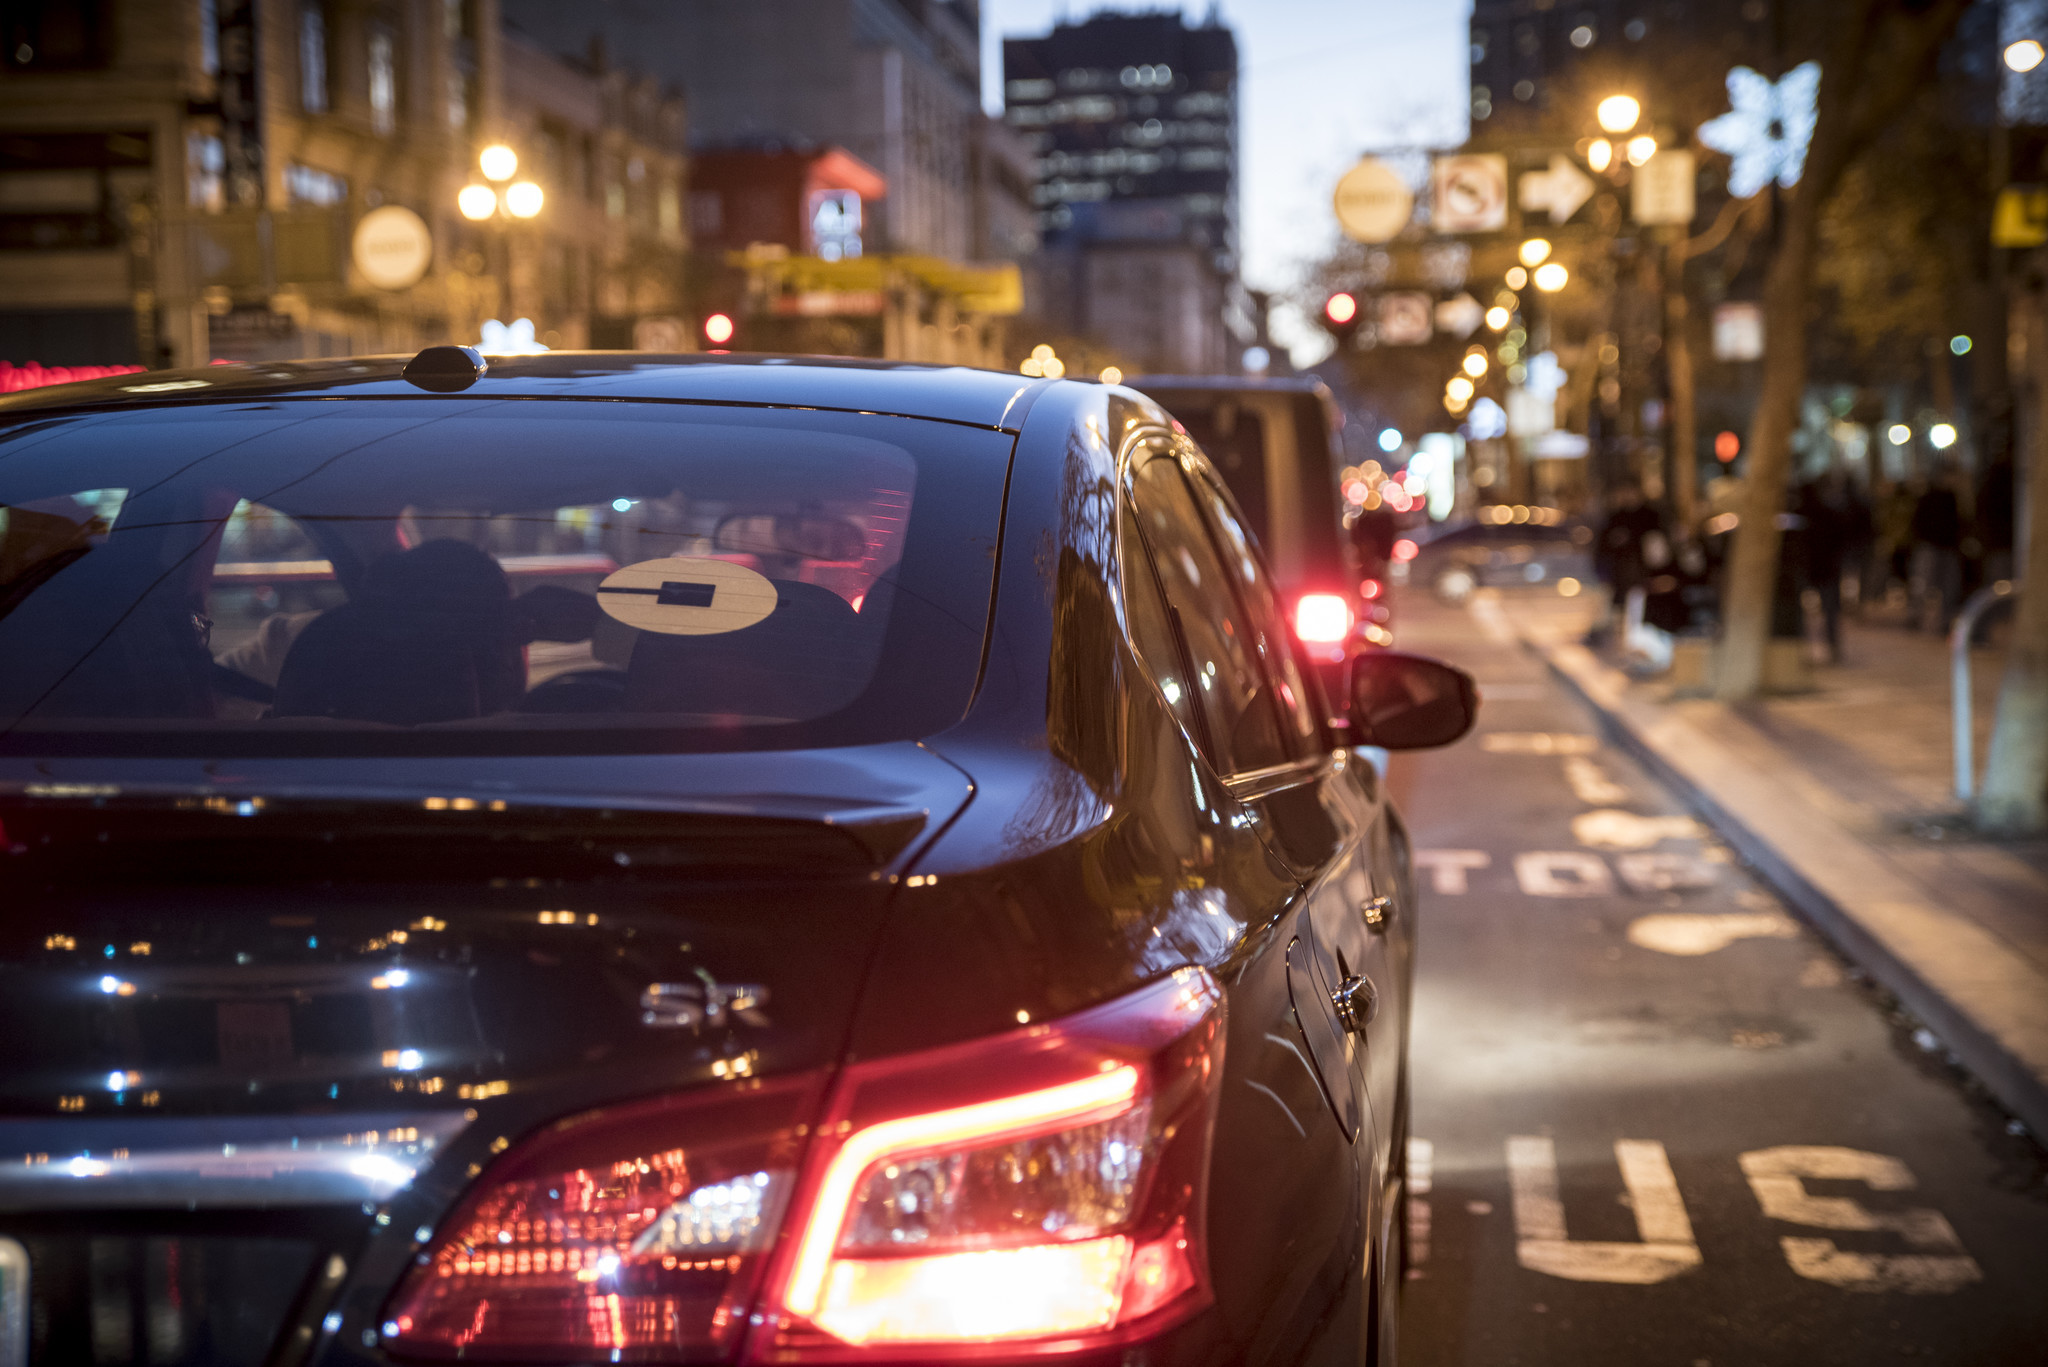 Who Pays Better Uber Or Lyft >> Want to avoid sky-high Uber and Lyft fares on New Year's Eve? Leave early or leave late - LA Times